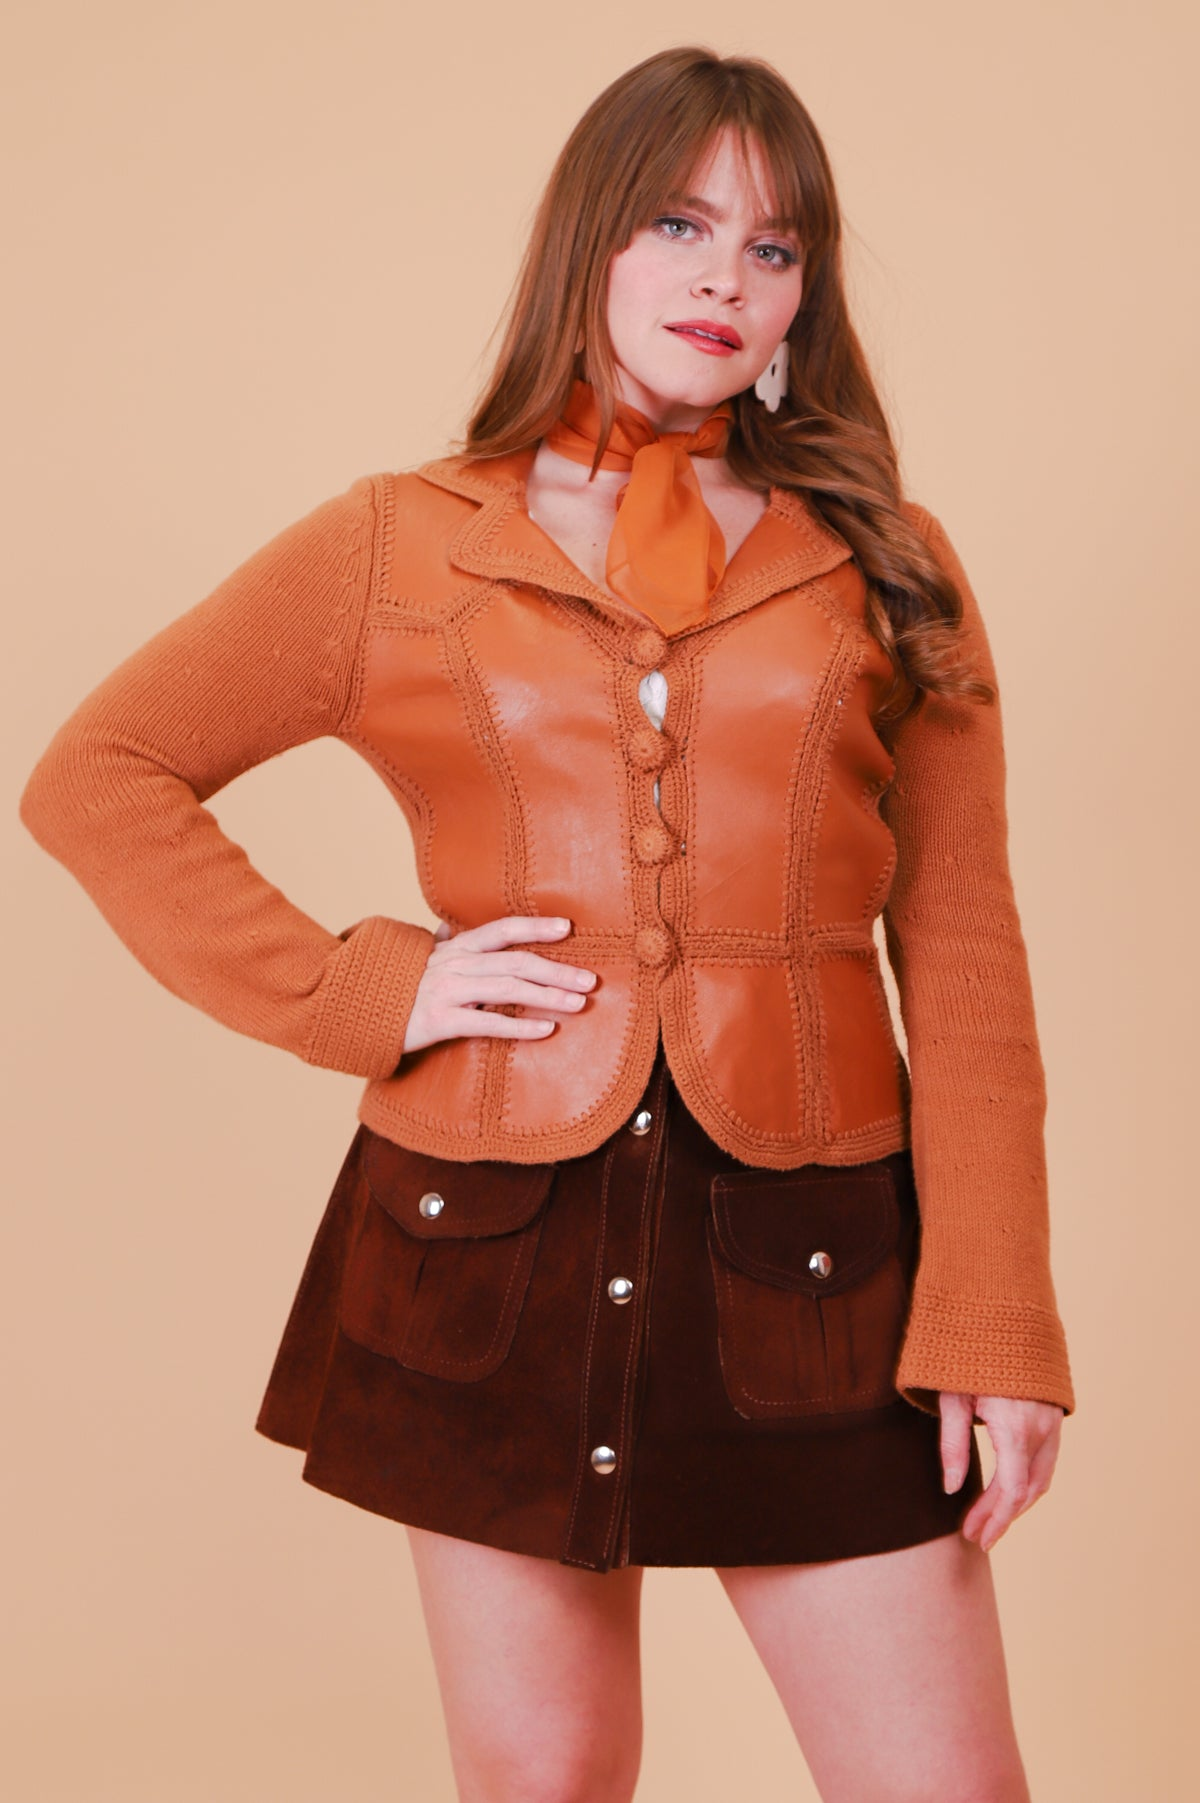 Vintage 1970's Joni Caramel Knit Leather Jacket